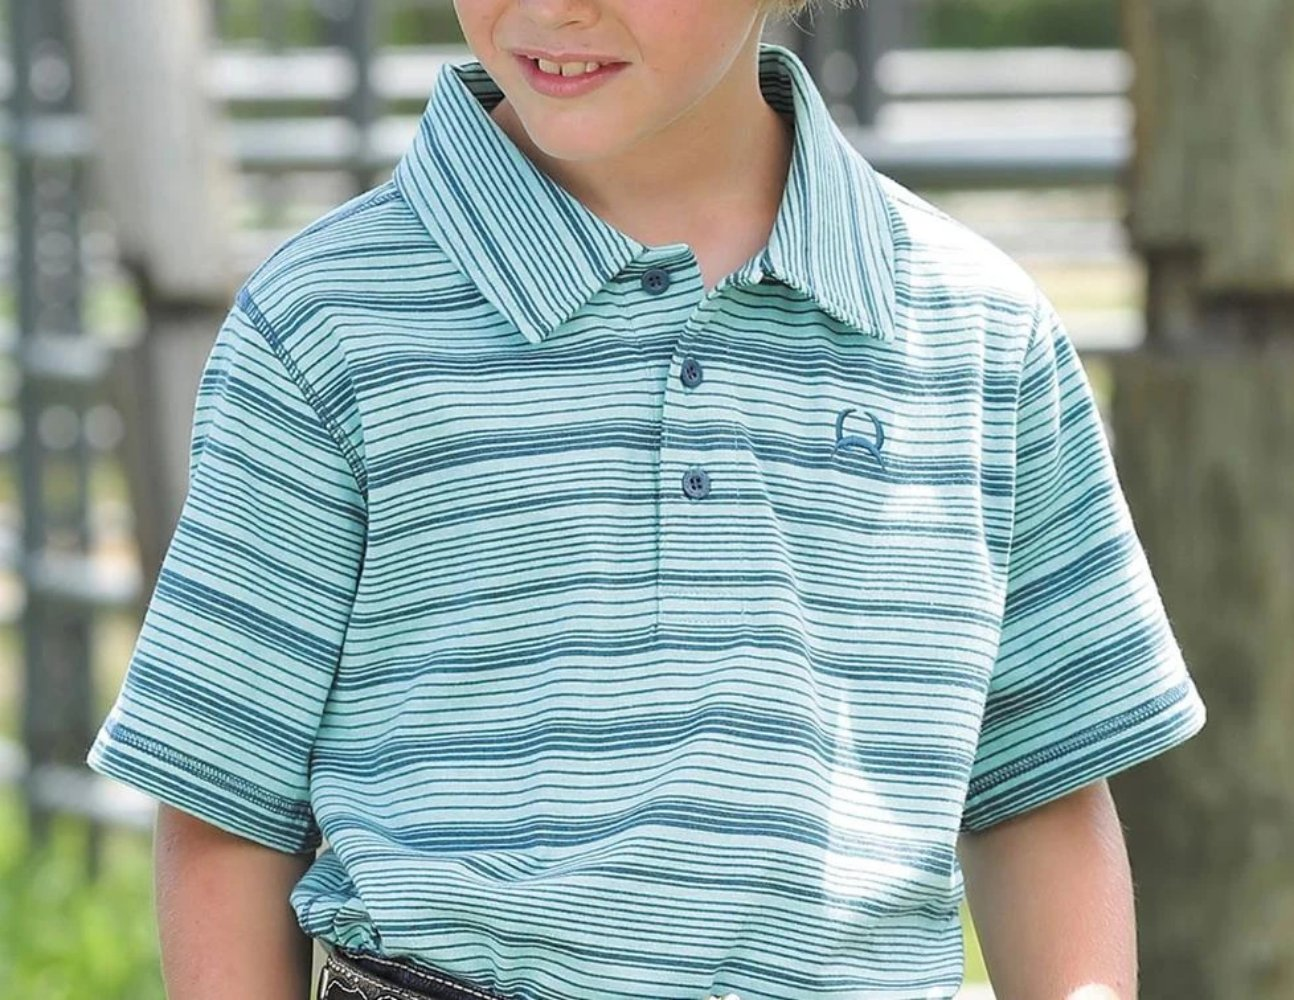 Cinch Boys Polo Shirt KIDS - Boys - Clothing - Shirts - Short Sleeve Shirts CINCH Teskeys